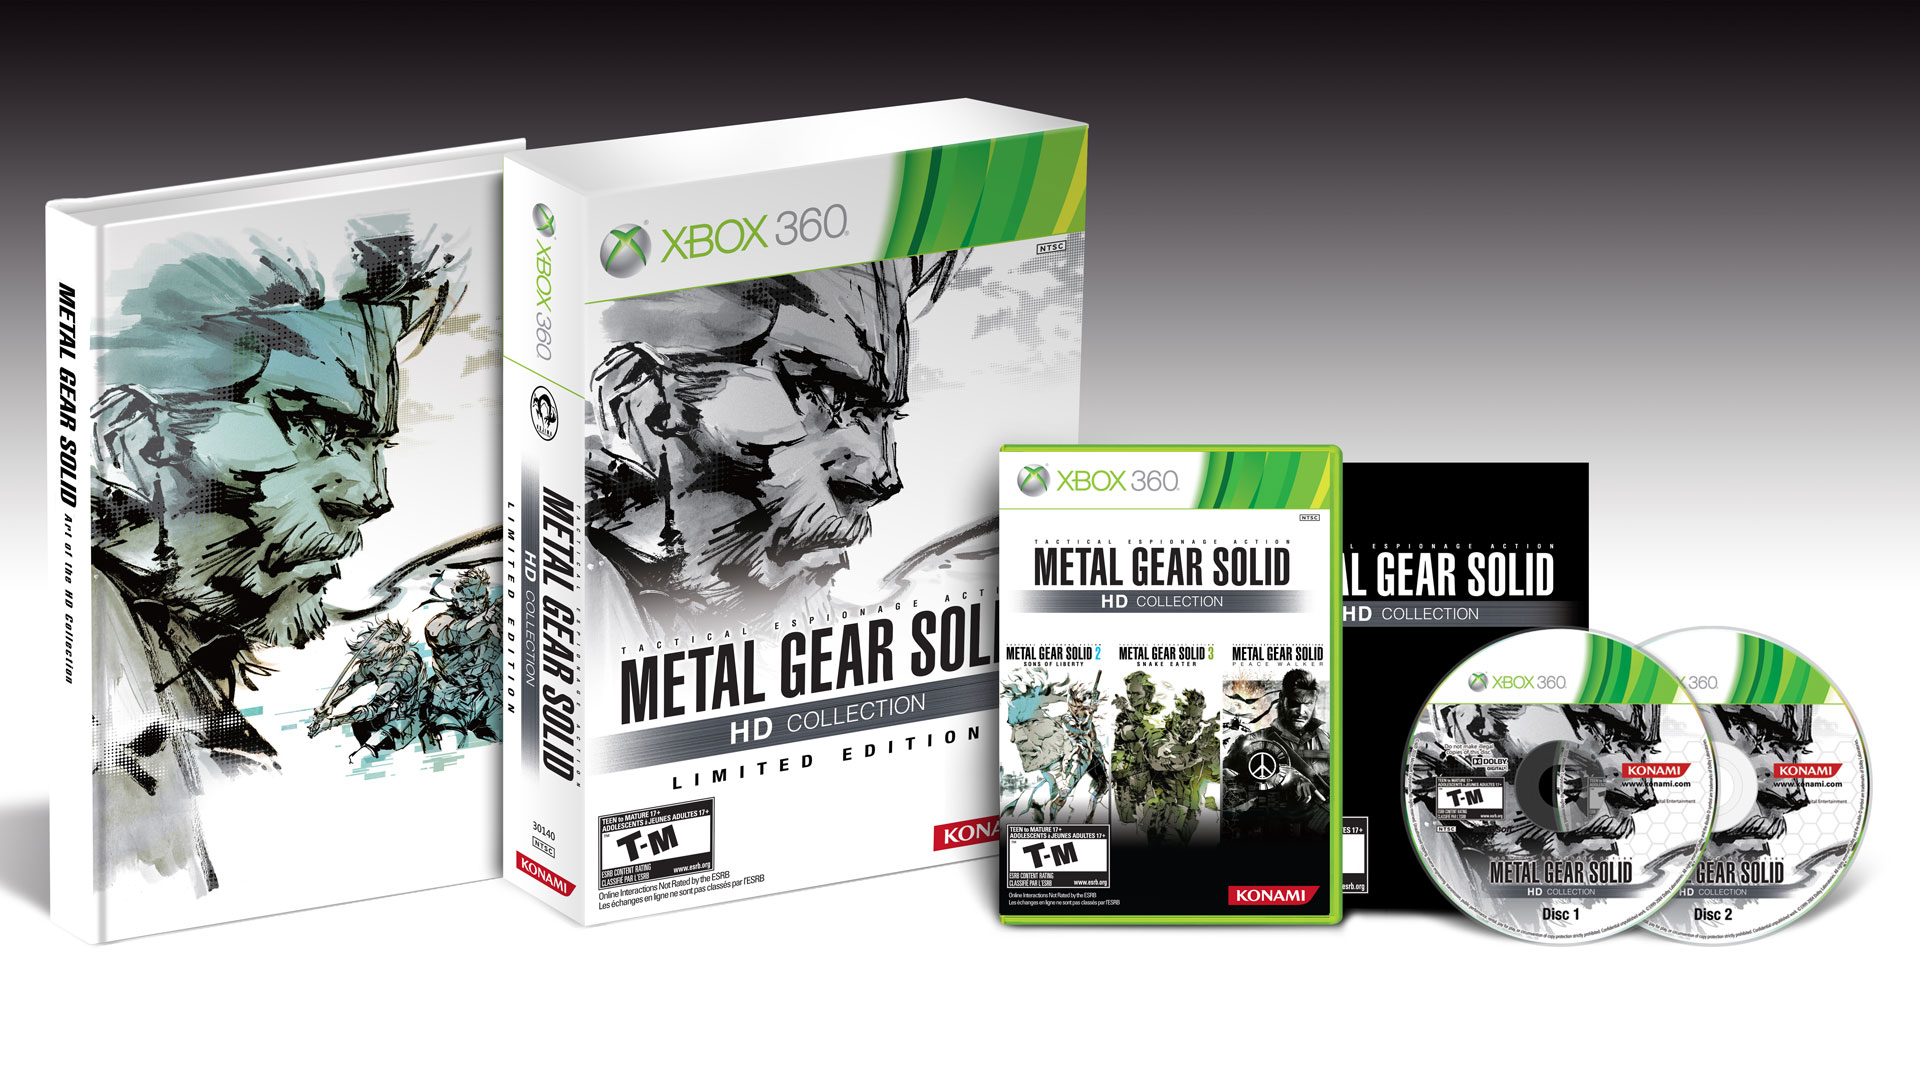 file_1365_metal-gear-solid-hd-collection-limited-edition1